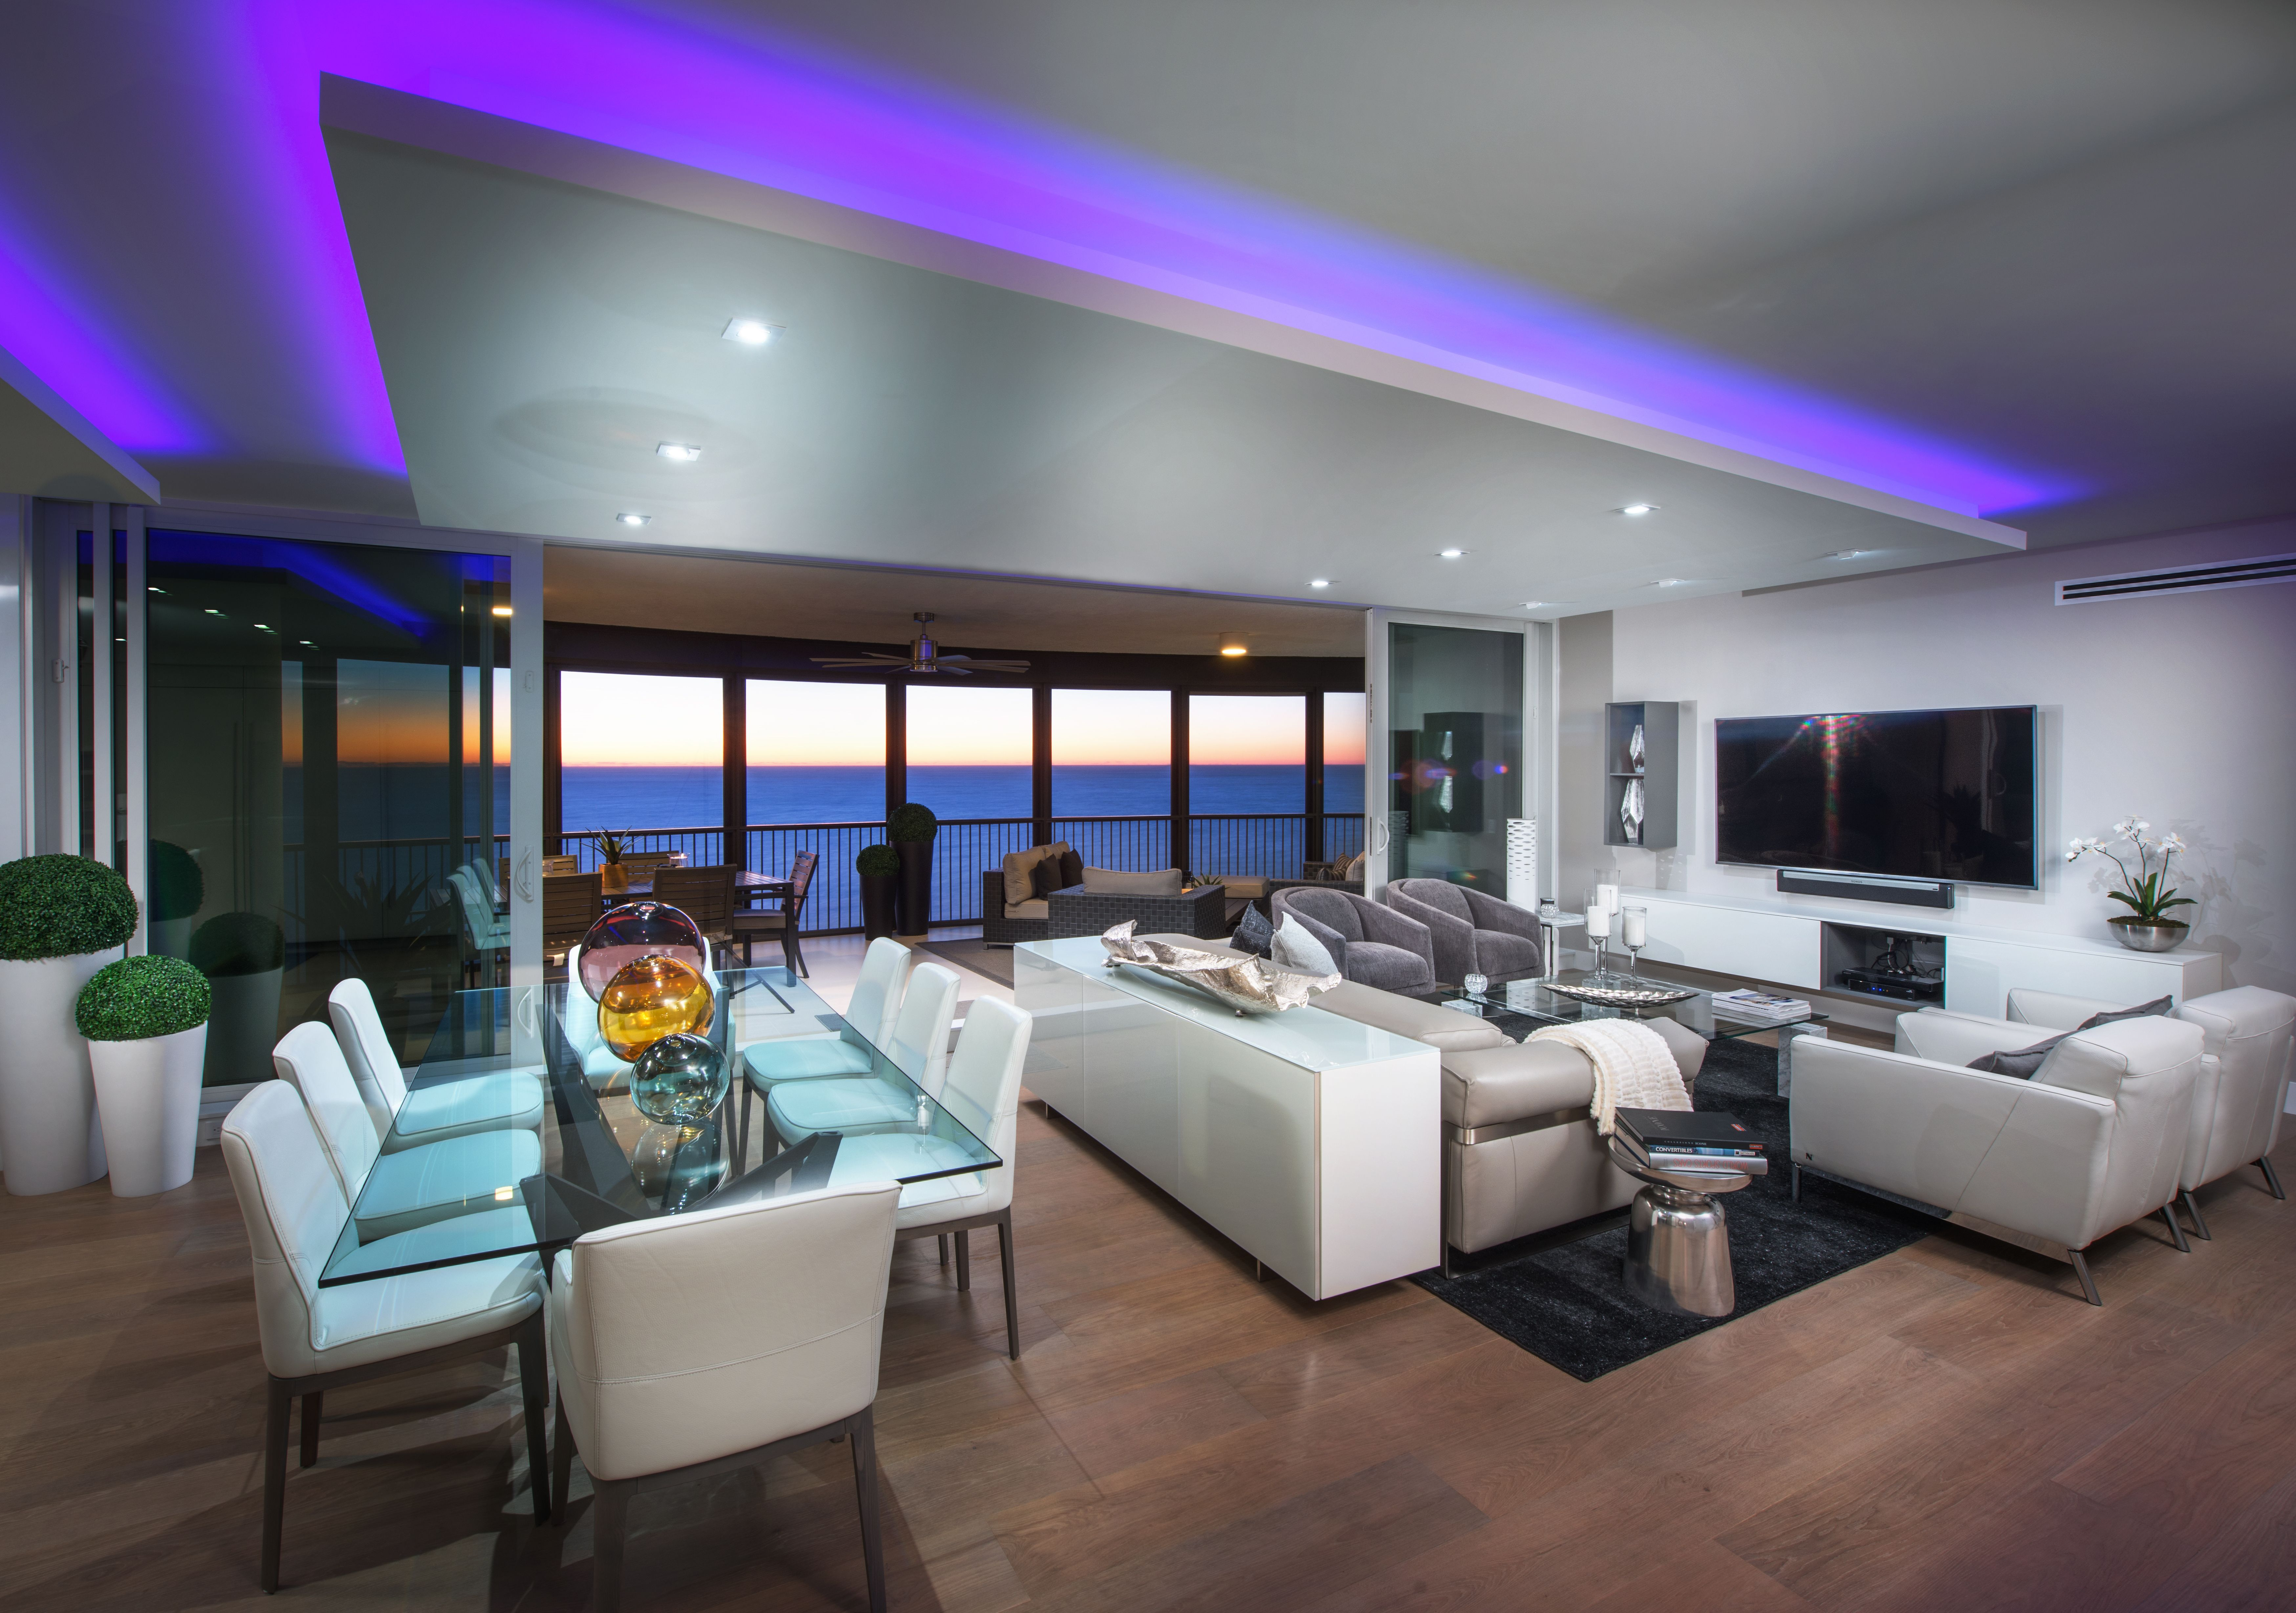 Stunning wood flooring, multicolor cove lighting, and a